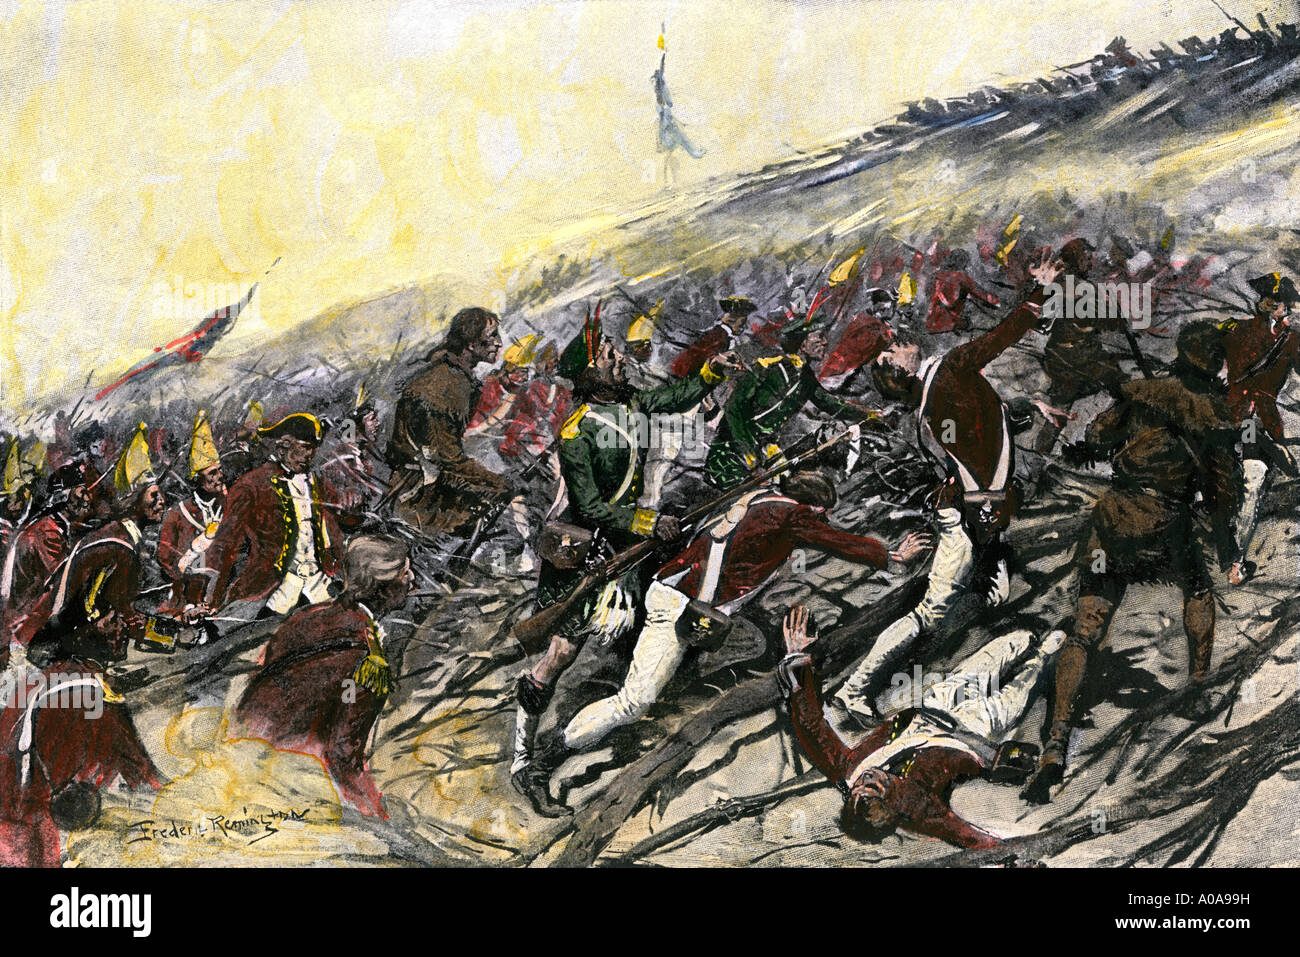 Jeffrey Amherst leading British troops taking Fort Ticonderoga in the French and Indian War 1759. Hand-colored halftone of an illustration - Stock Image